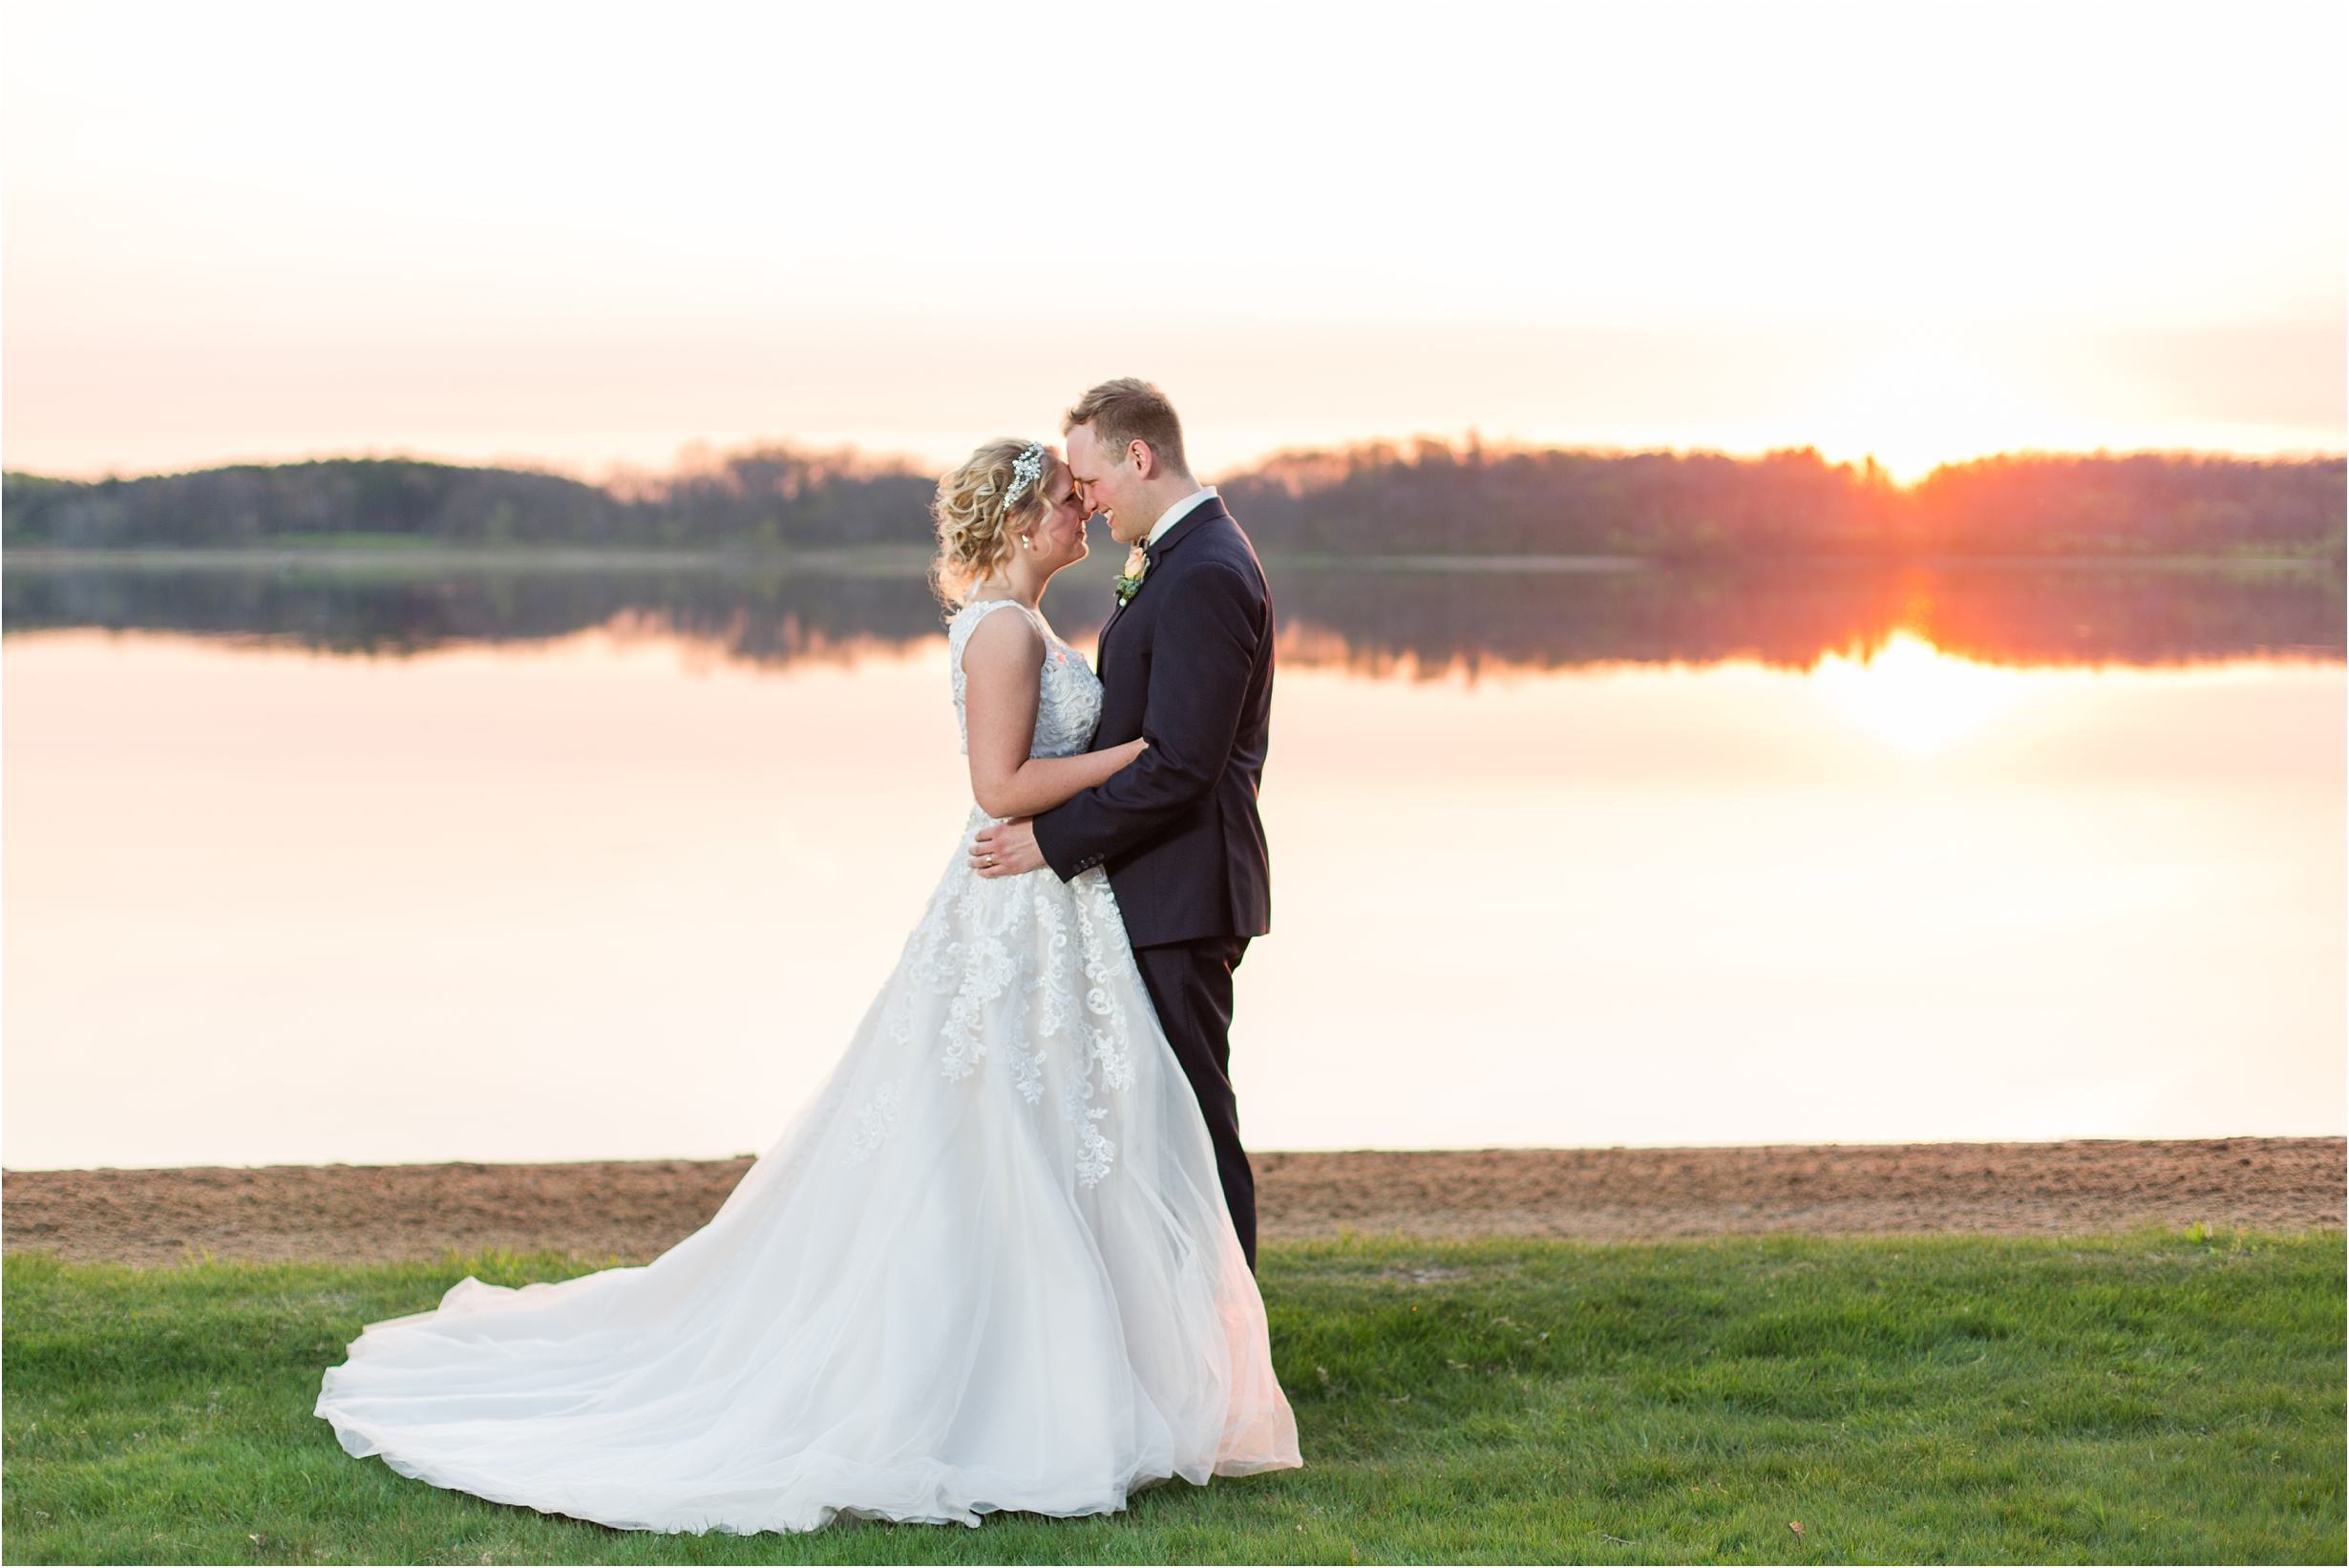 best-of-2016-wedding-photos-with-courtney-carolyn-photography-romantic-timeless-candid-wedding-photographer-in-detroit-mi_0027.jpg